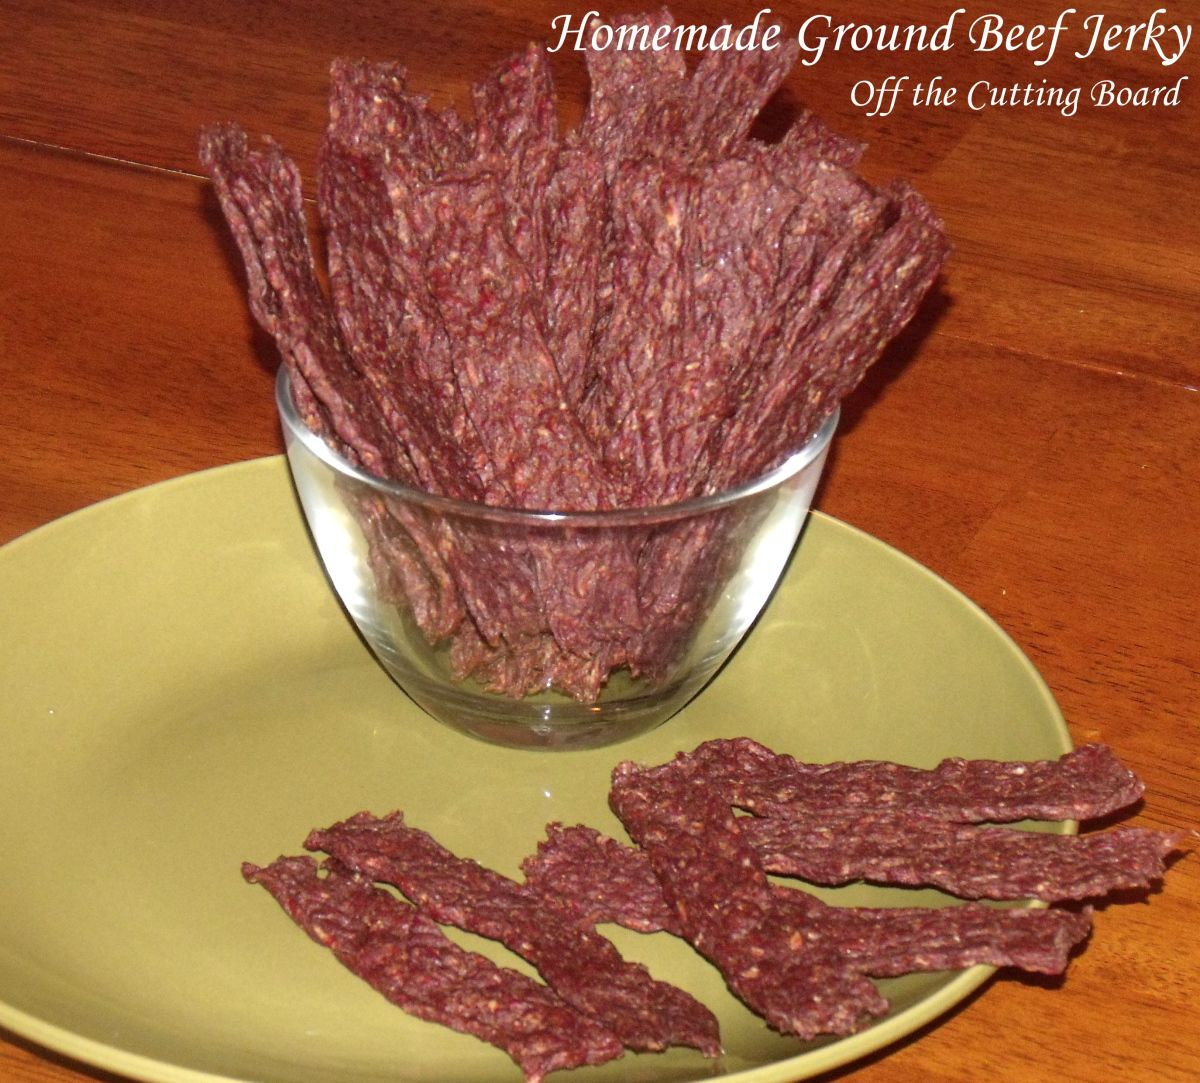 Homemade Ground Beef Jerky With Images Beef Jerky Recipes Beef Jerky Ground Beef Jerky Recipe